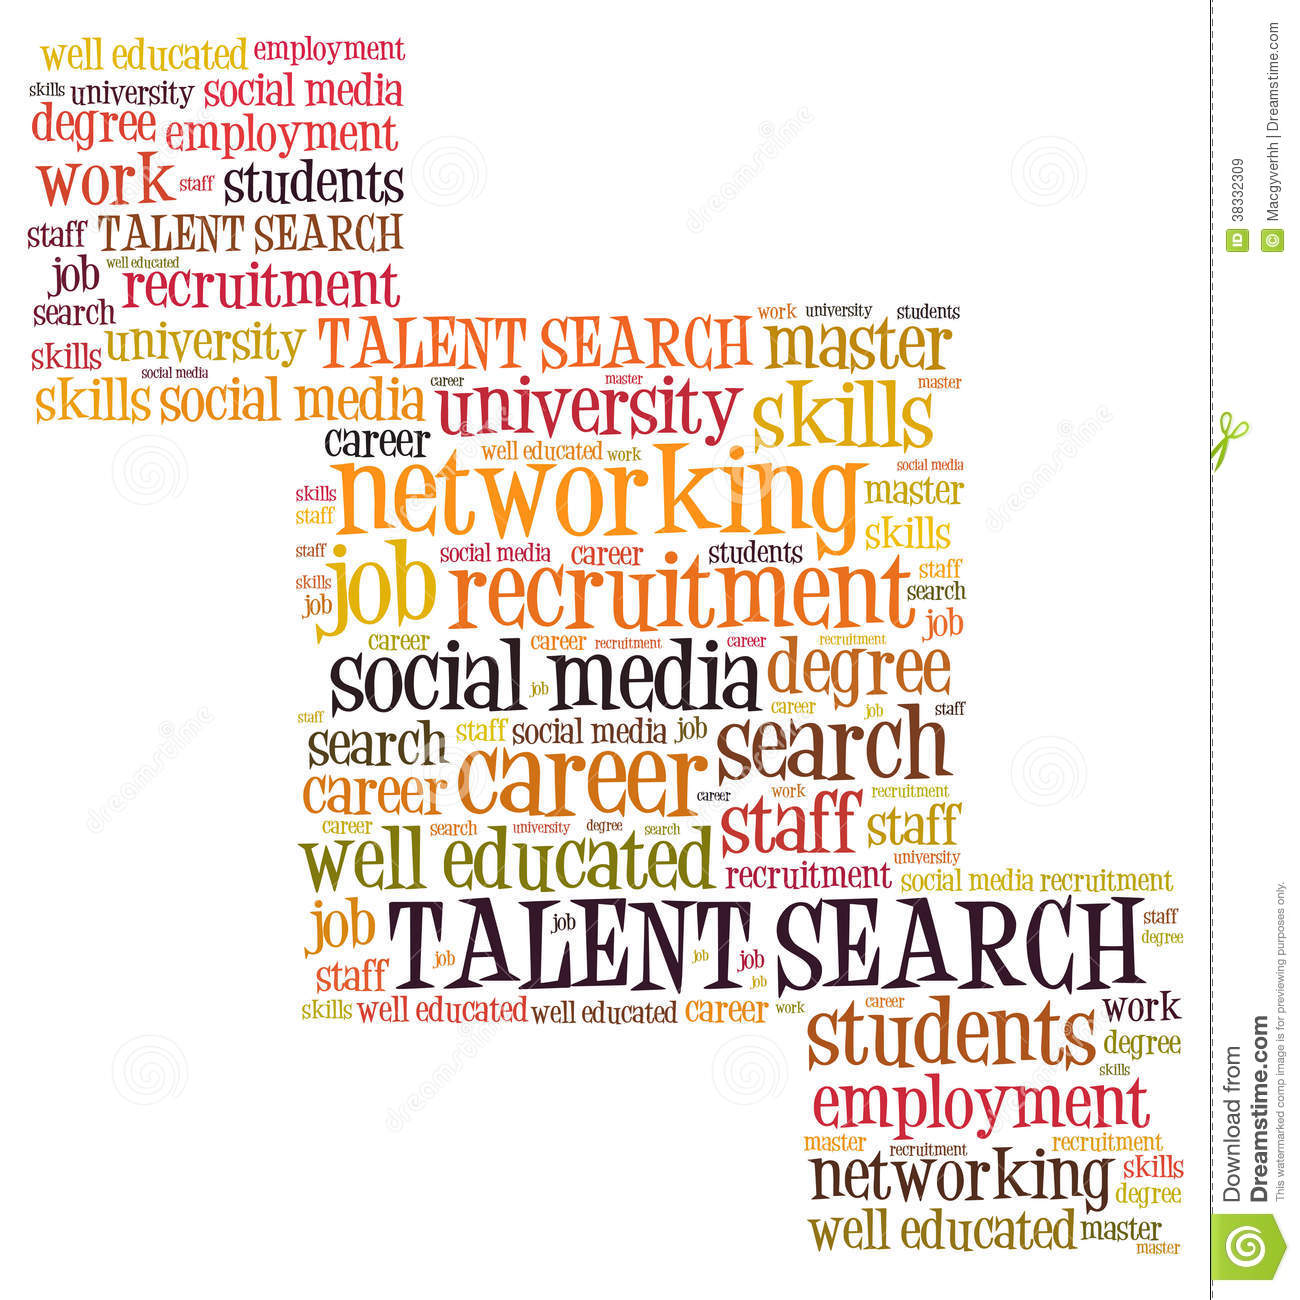 Talent Search Royalty Free Stock Images - Image: 38332309: dreamstime.com/royalty-free-stock-images-talent-search-word-cloud...